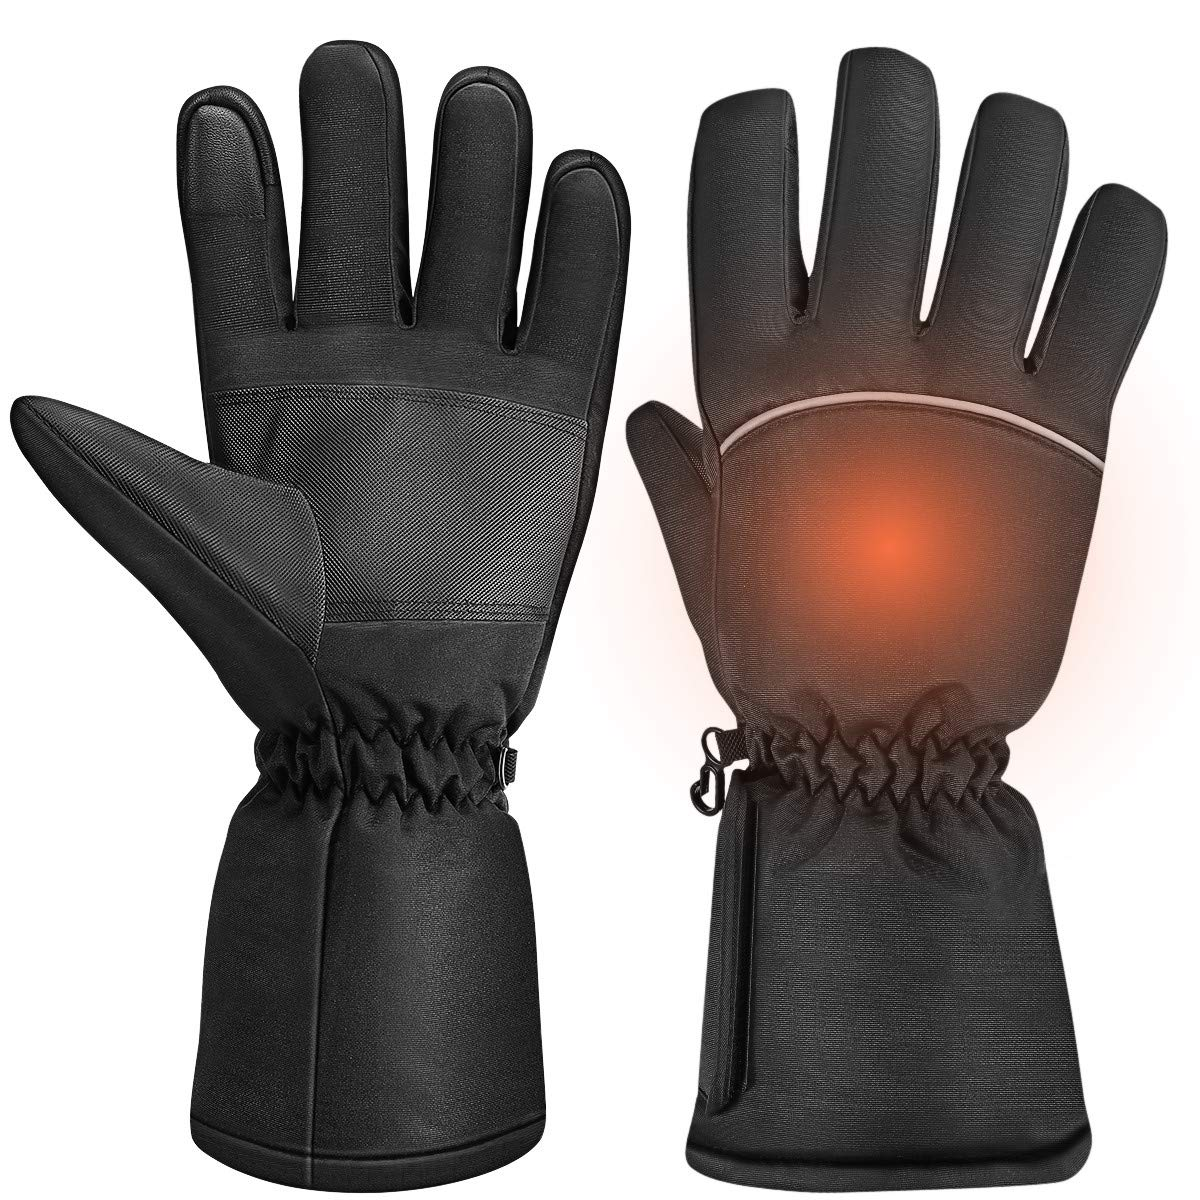 Clispeed Unisex Heated Gloves Touchscreen Warm Glove Hand Warmers for Winter Outdoor Camping Hiking Hunting by CLISPEED